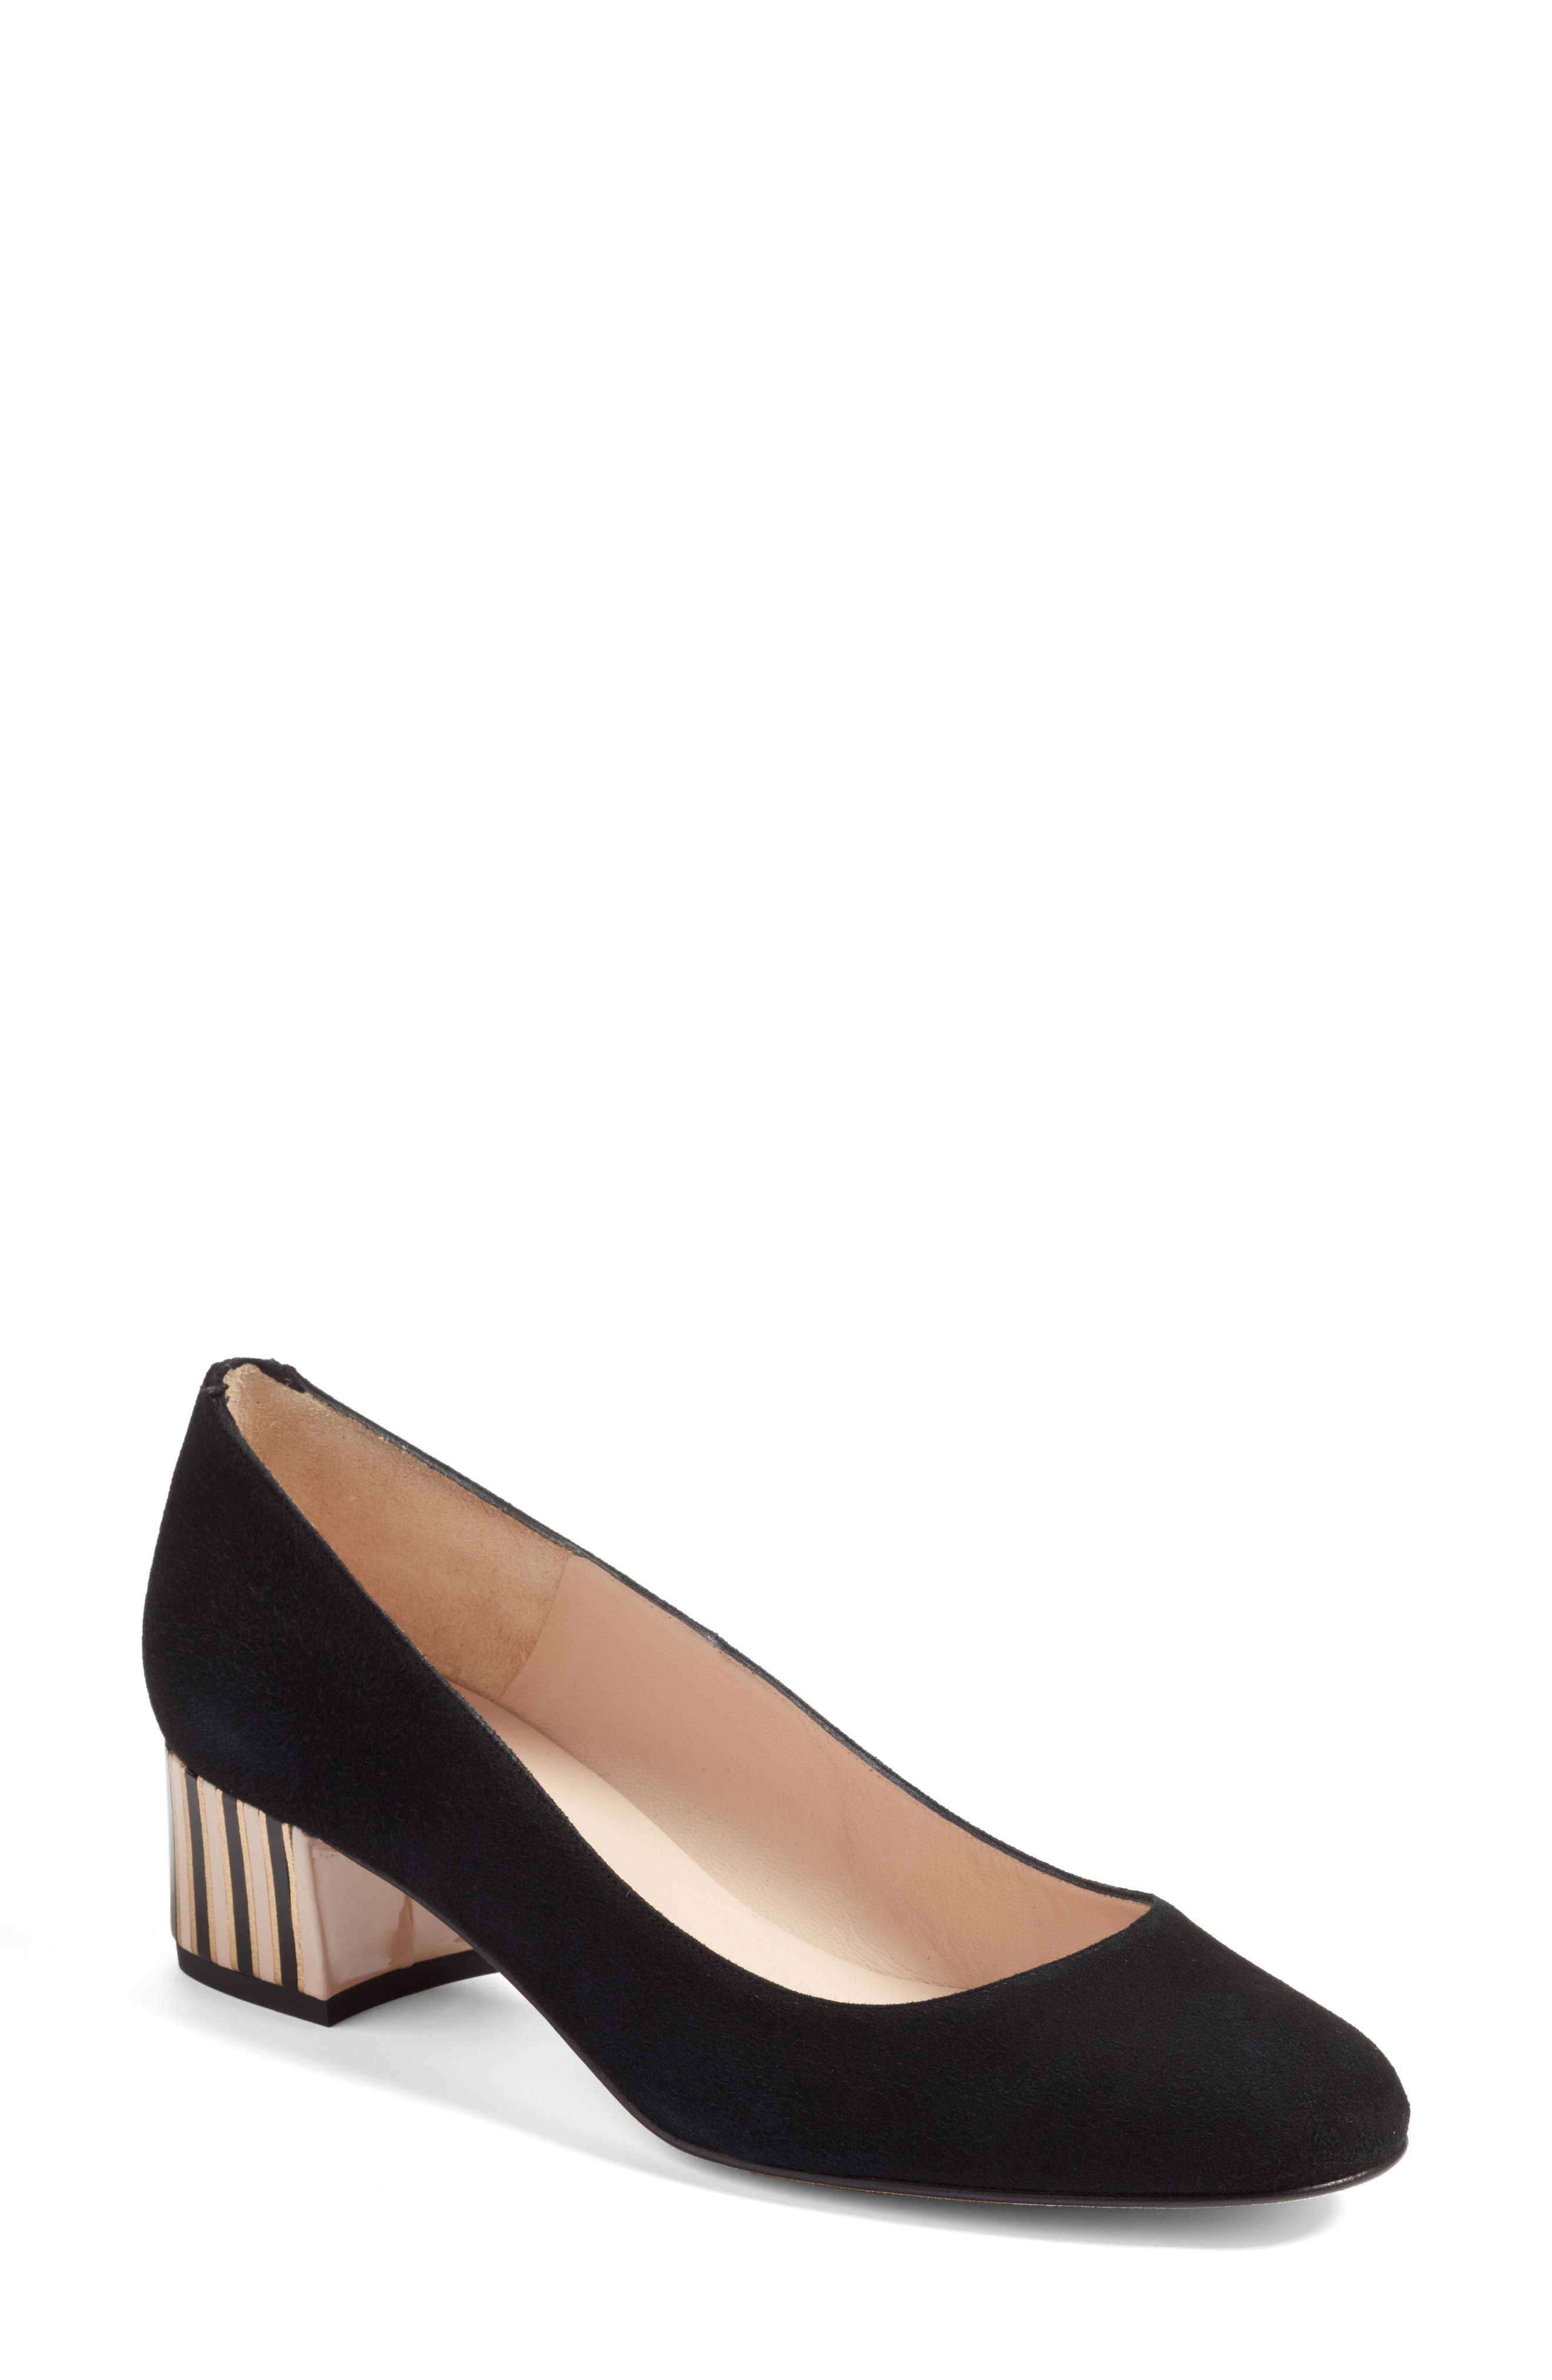 Alternate Image 1 Selected - L.K. Bennett Maisy Embellished Heel Pump (Women)